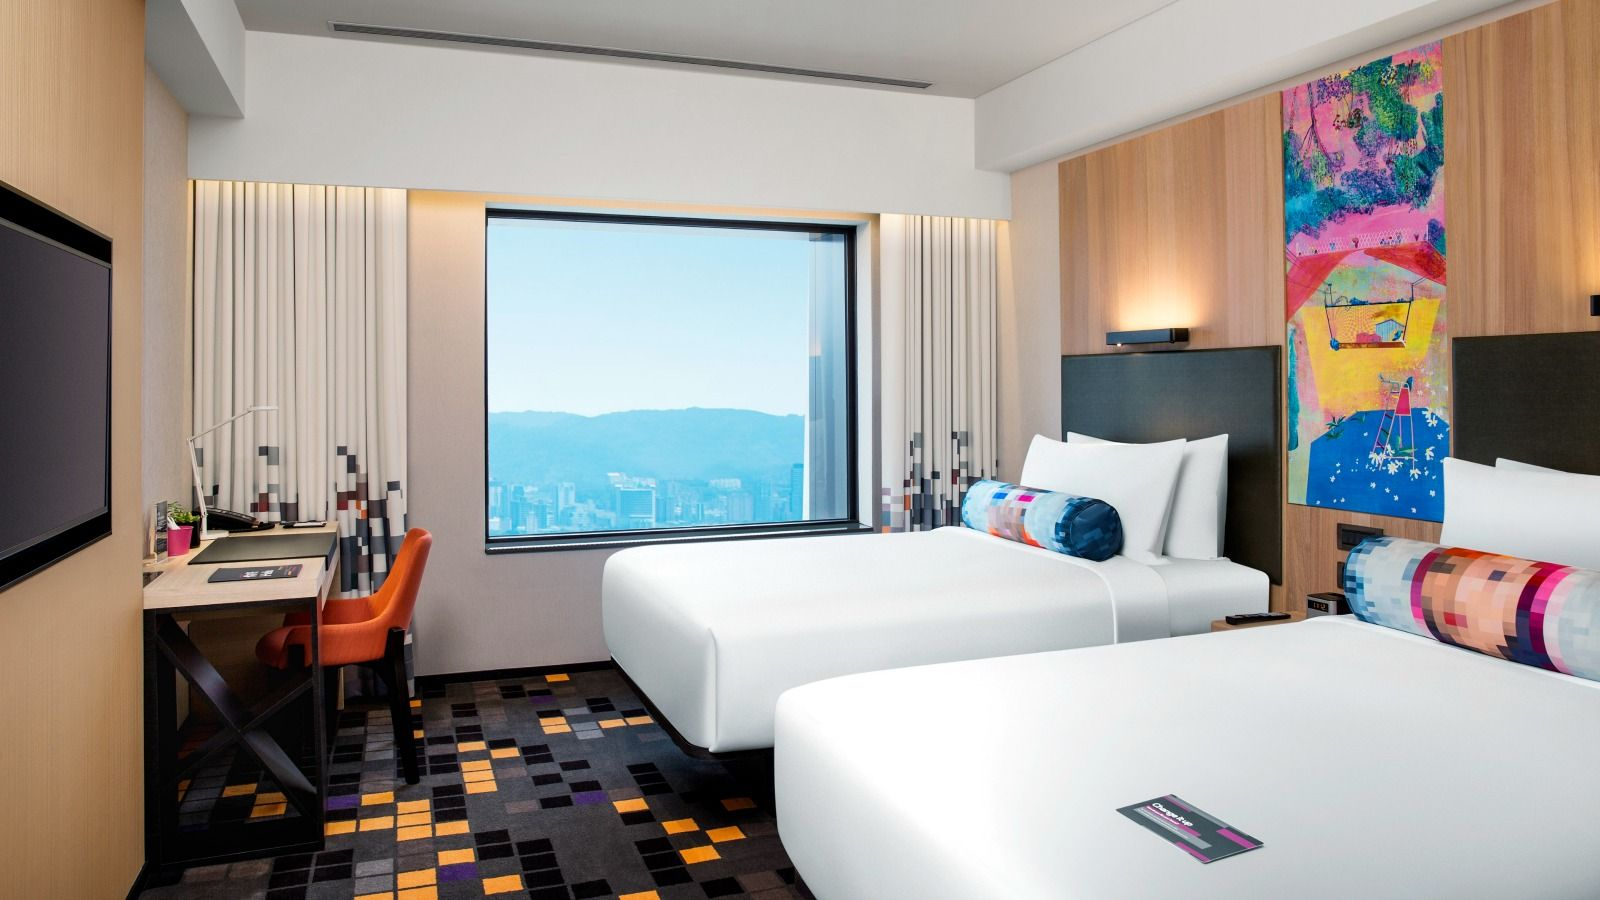 Aloft Room - City View - Twin